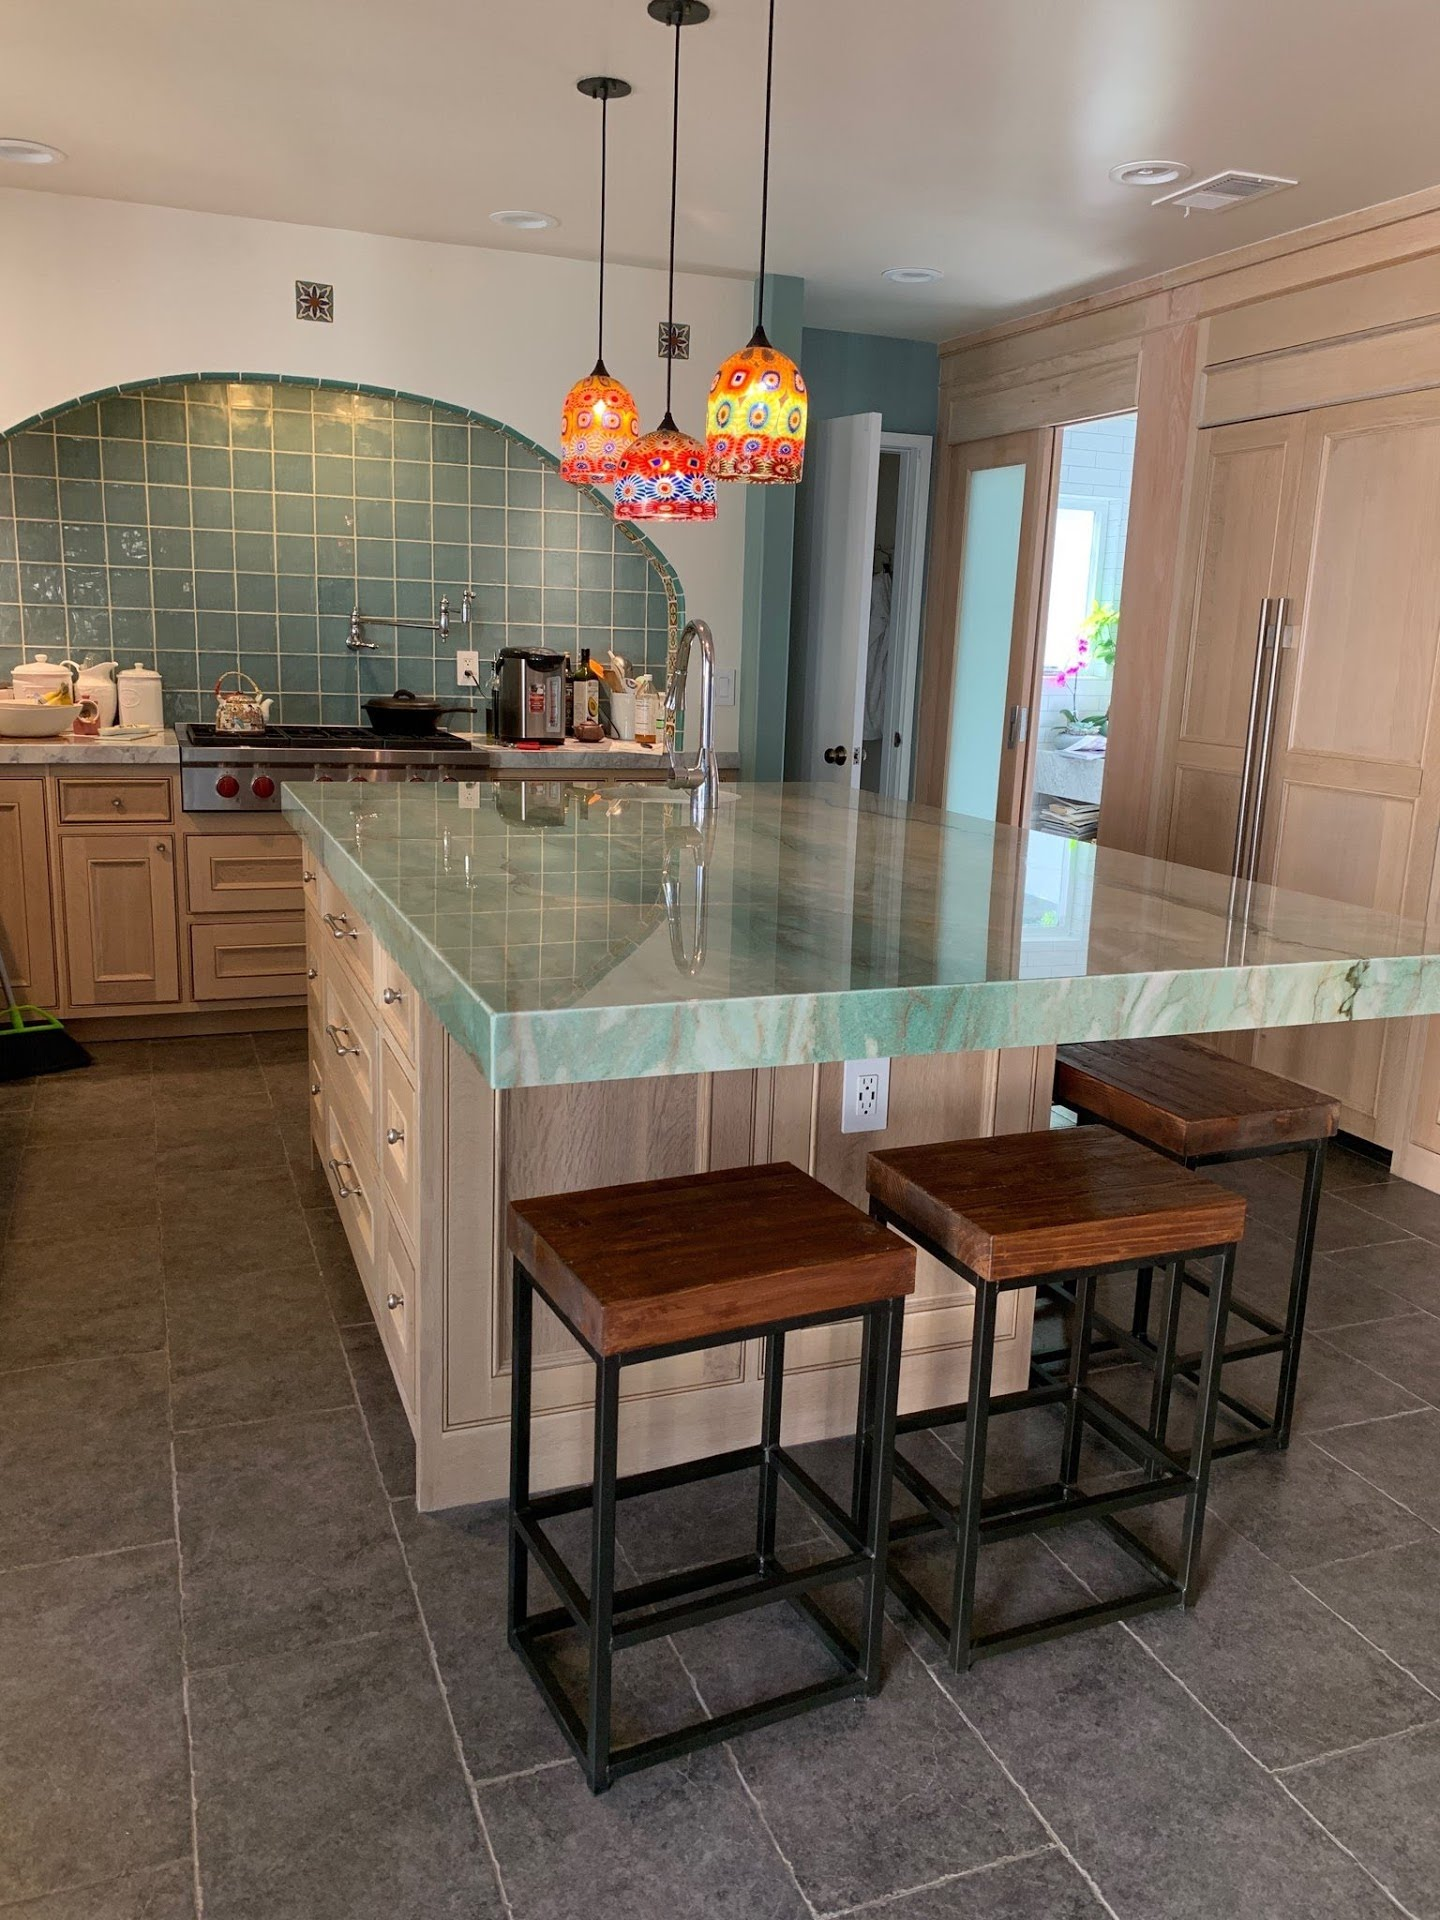 Summer Breeze Quartzite used for the Island is Naturally Bold and Beautiful